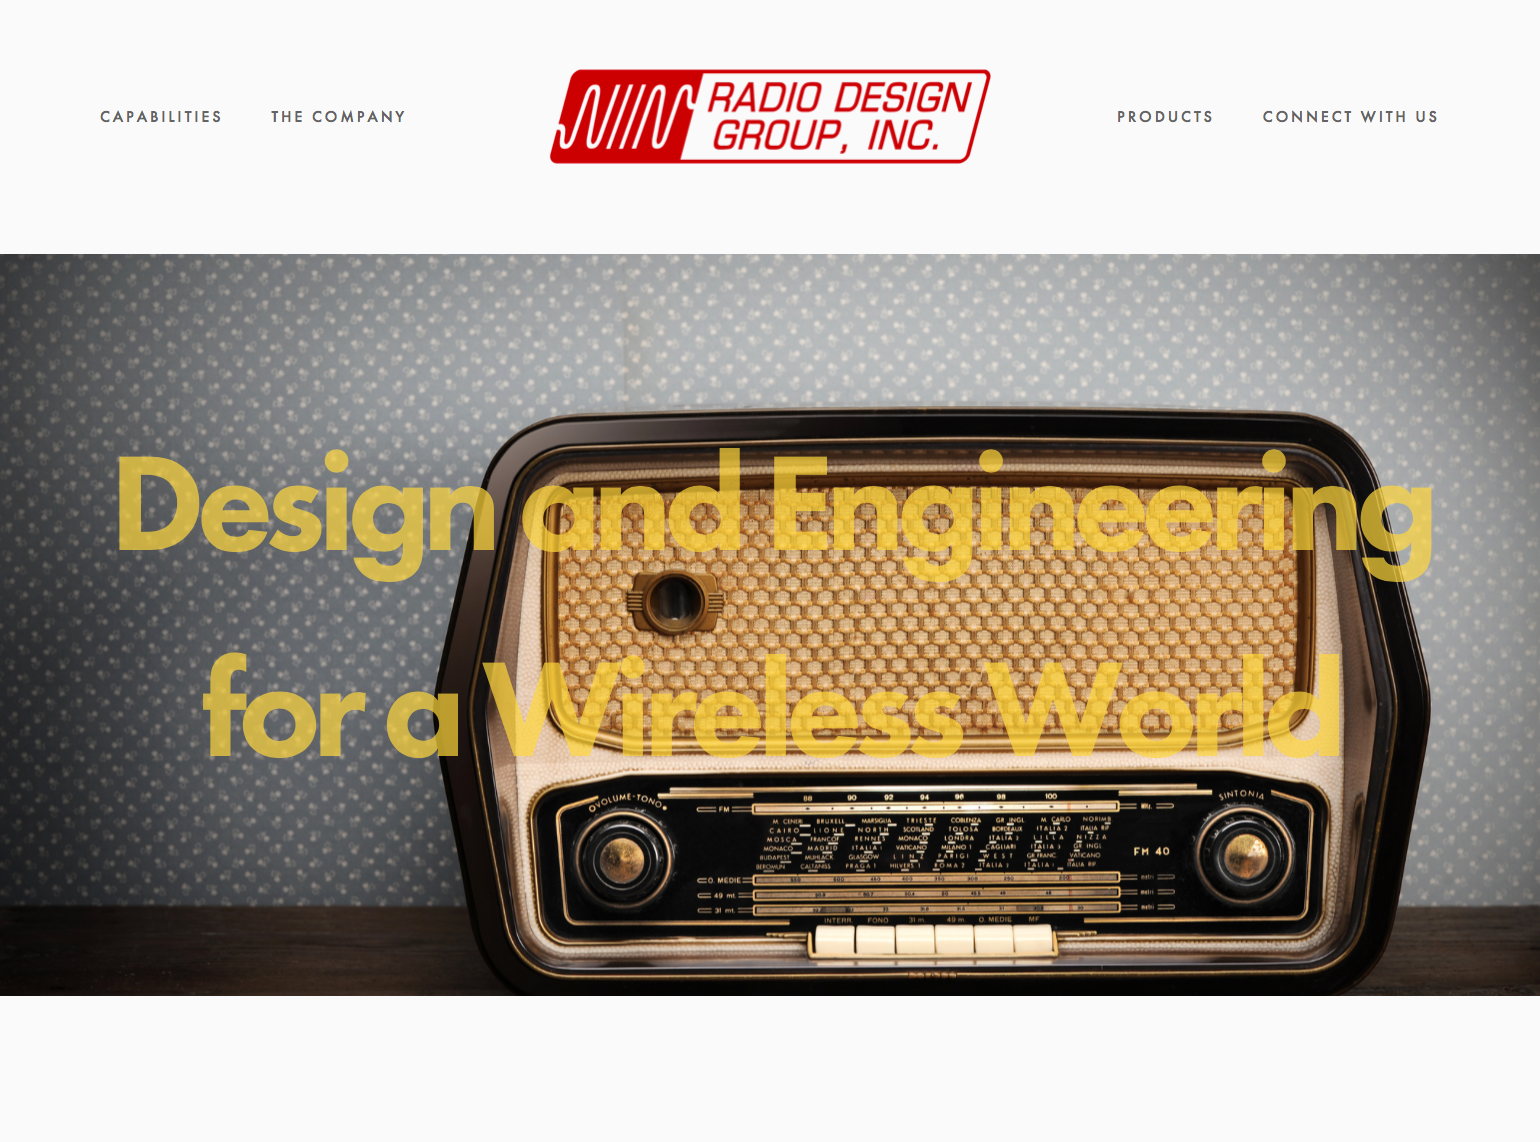 Squarespace website design and management for  Radio Design Group, Inc.